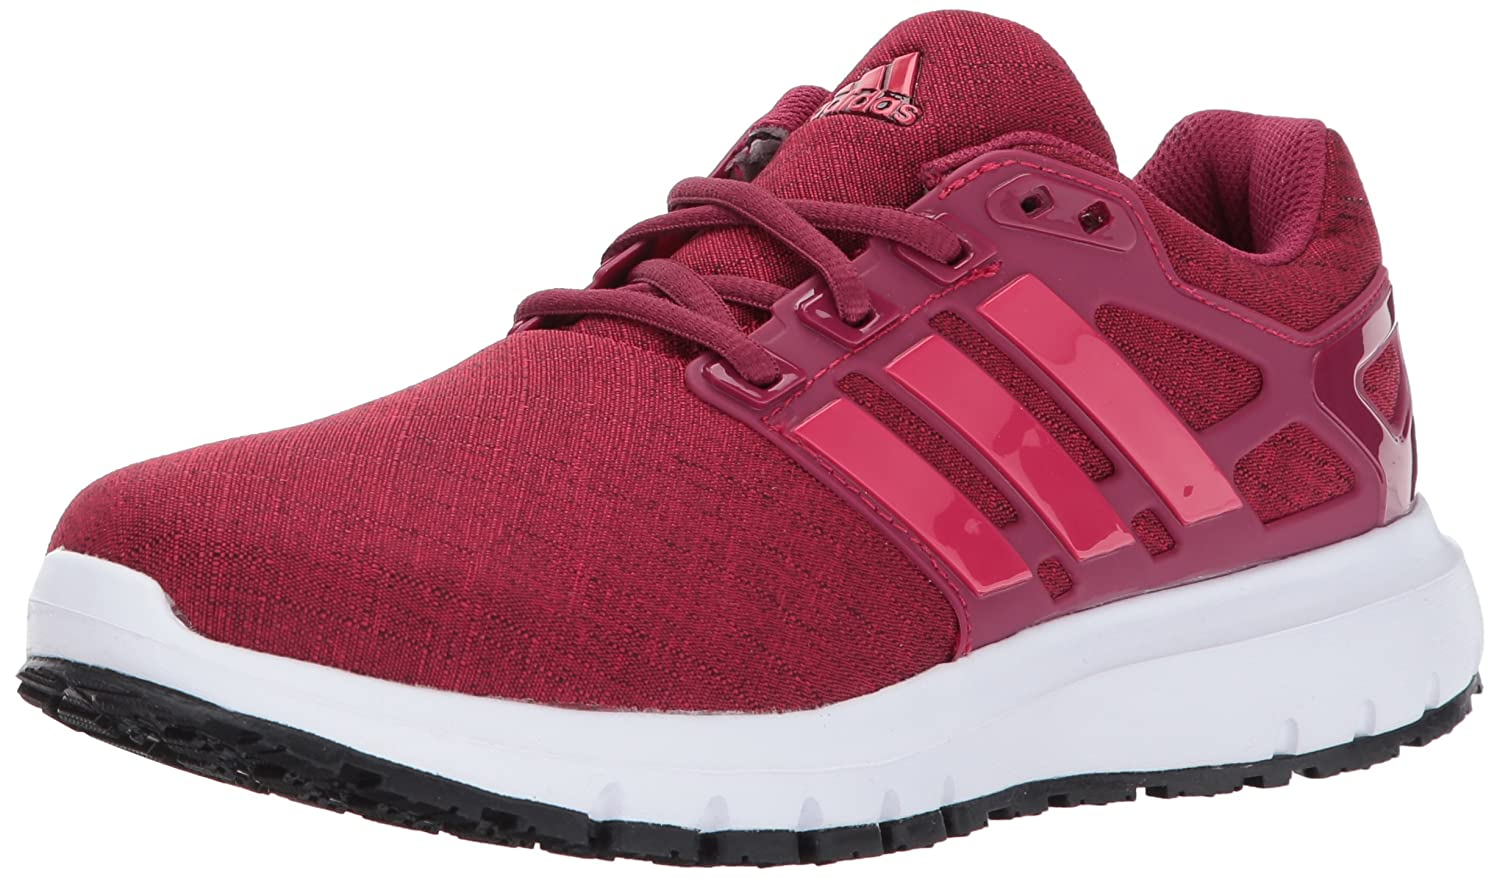 adidas Women's Energy Cloud W Running Shoe B01NCB34JR 10.5 B(M) US|Energy Pink/Energy Pink/Mystery Ruby